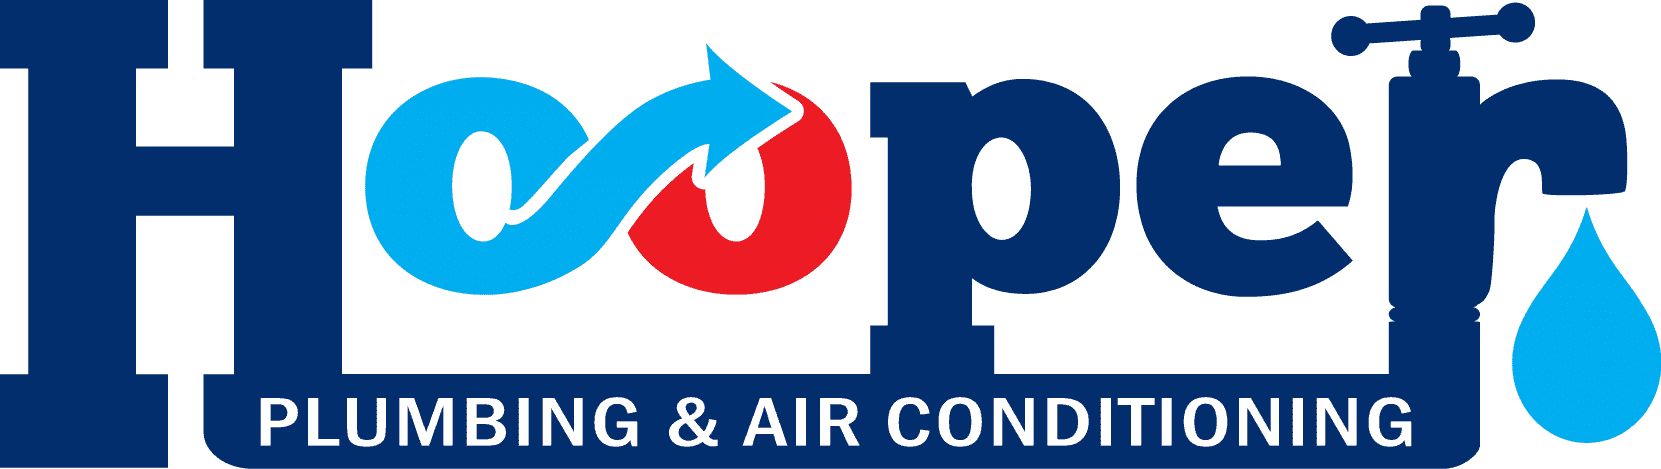 hooper plumbing & air conditioning